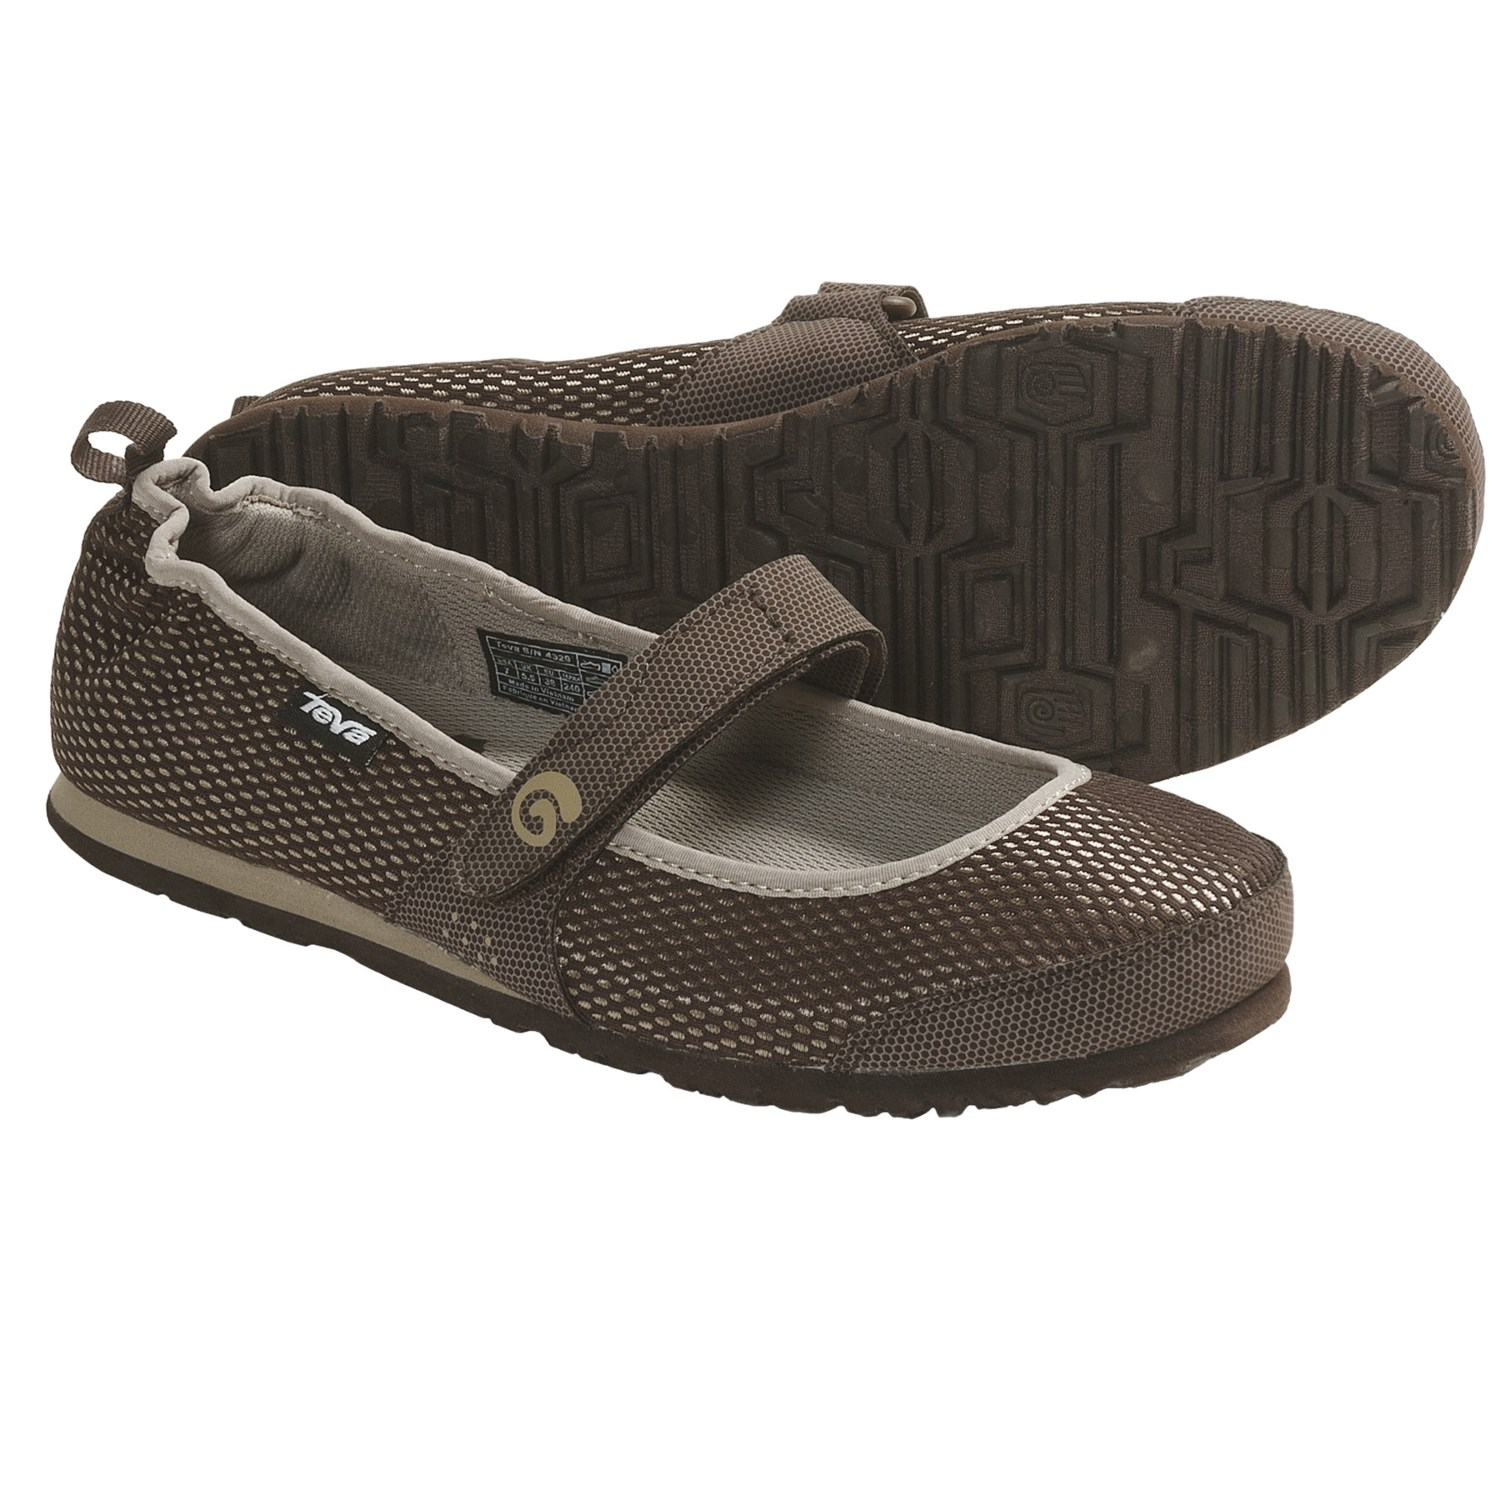 Teva Mush Frio Mary Jane Shoes (For Women) in Brown